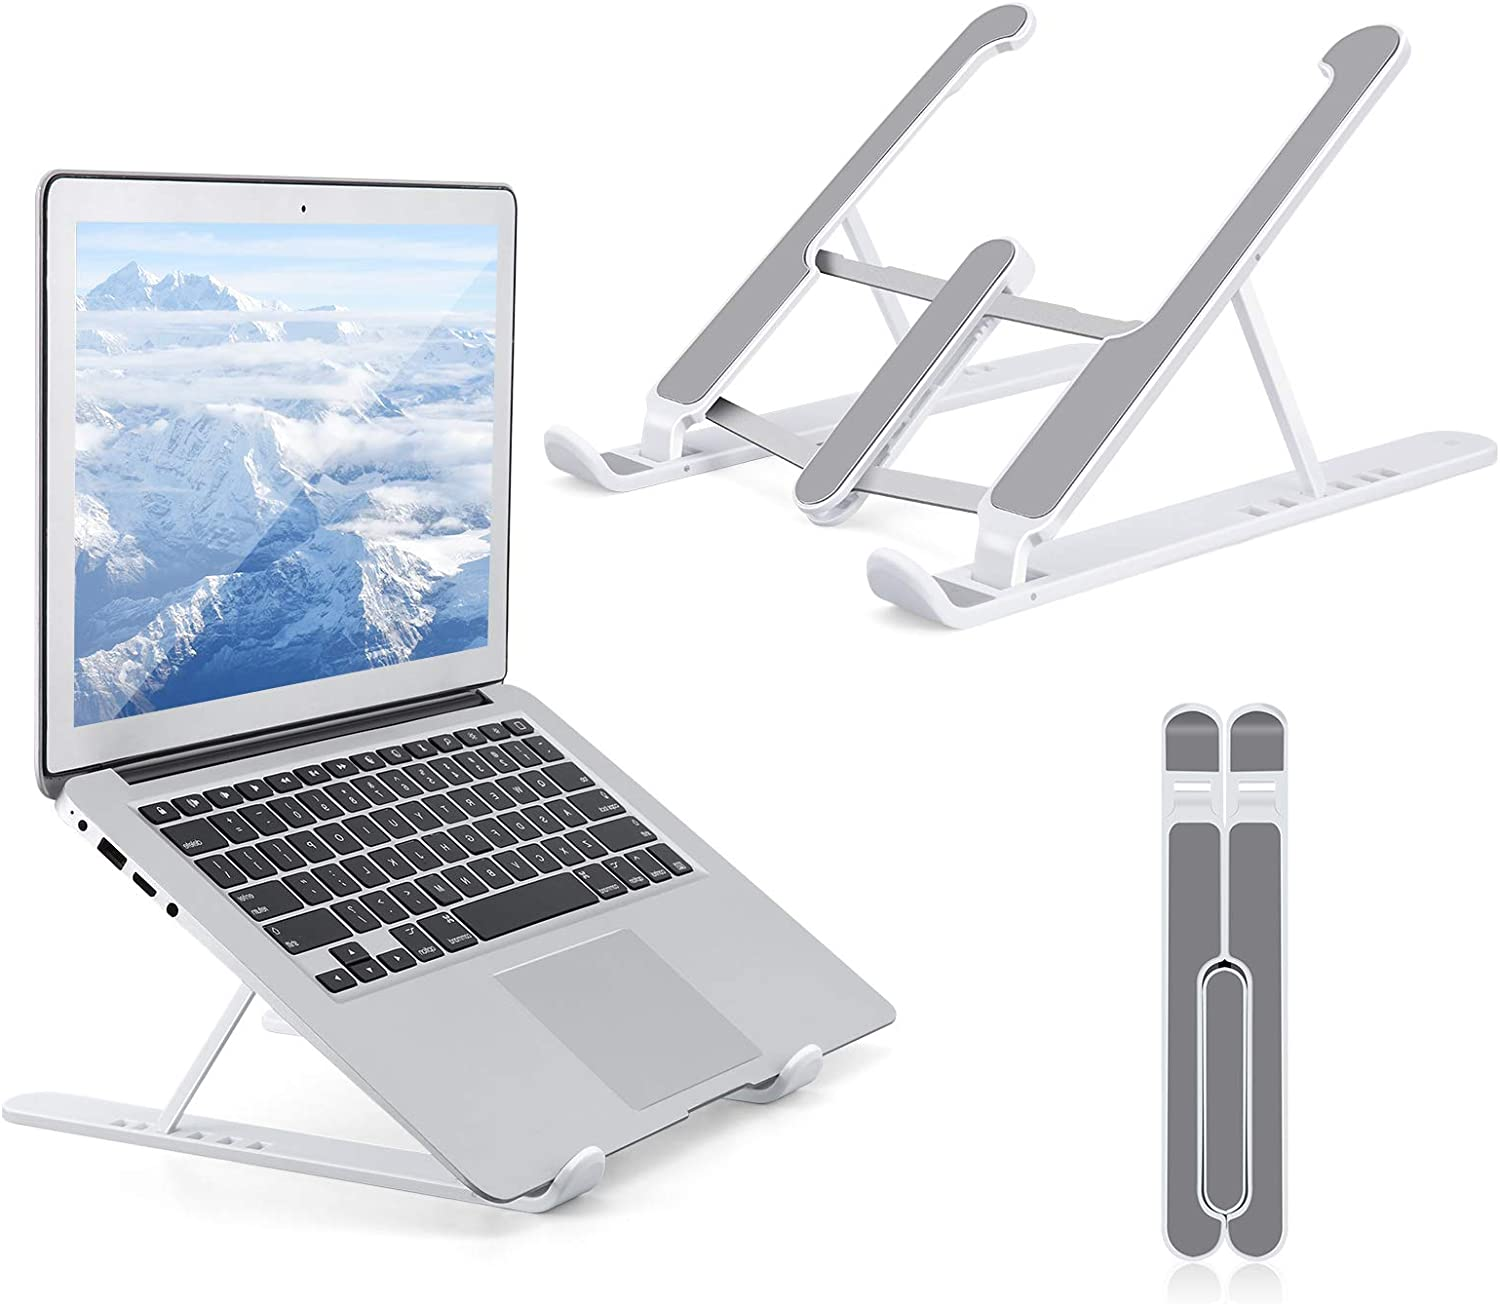 Gomyhom Laptop Stand, Foldable Portable Desktop Computer Laptop Stand, 6-Level Angle Adjustable Height Laptop Mount, Suitable for All Laptops and Tablets Gray